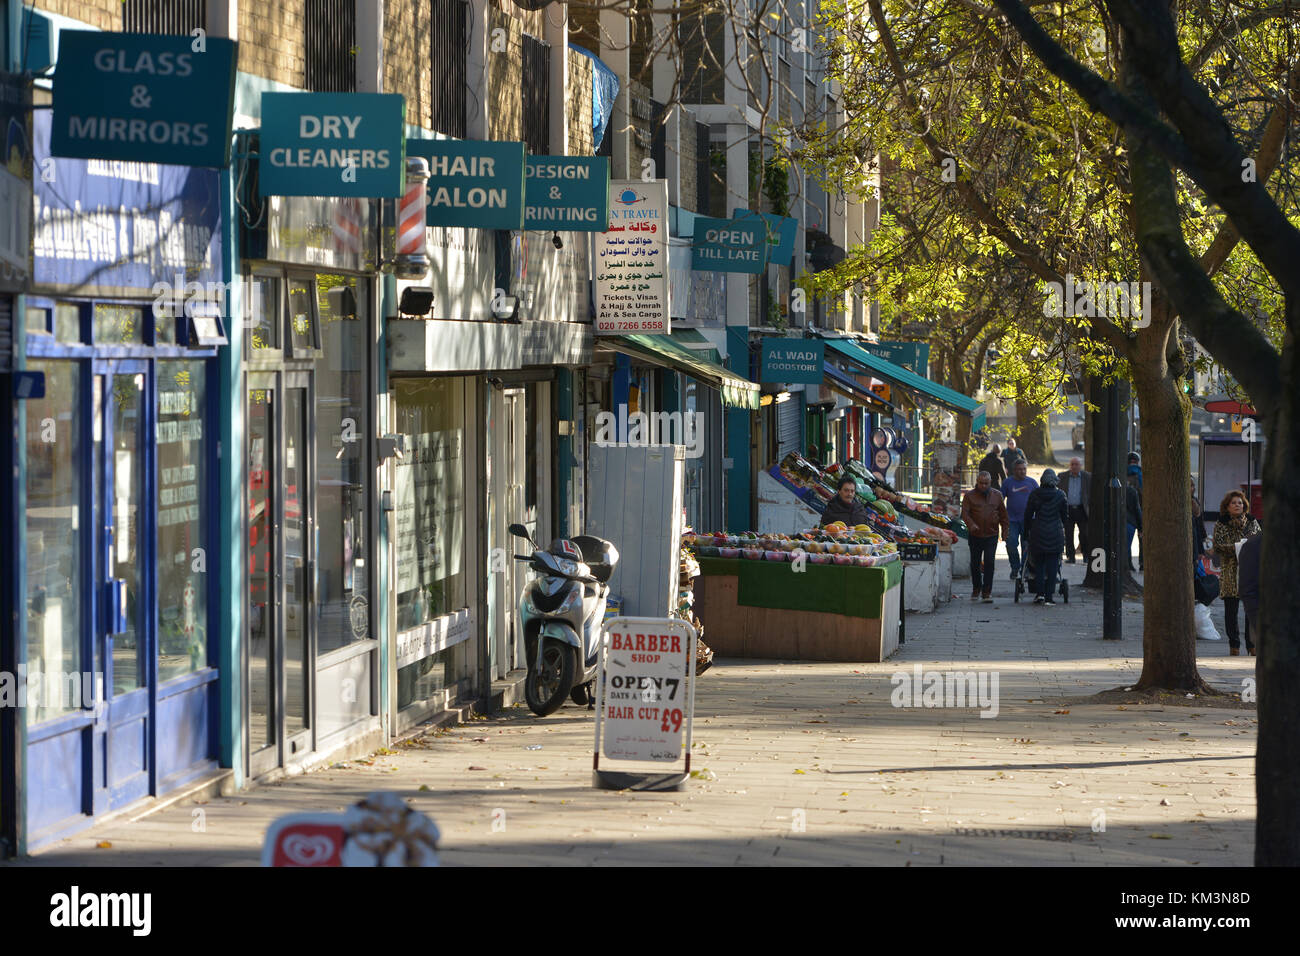 Small independent shops on Harrow Road, London. - Stock Image